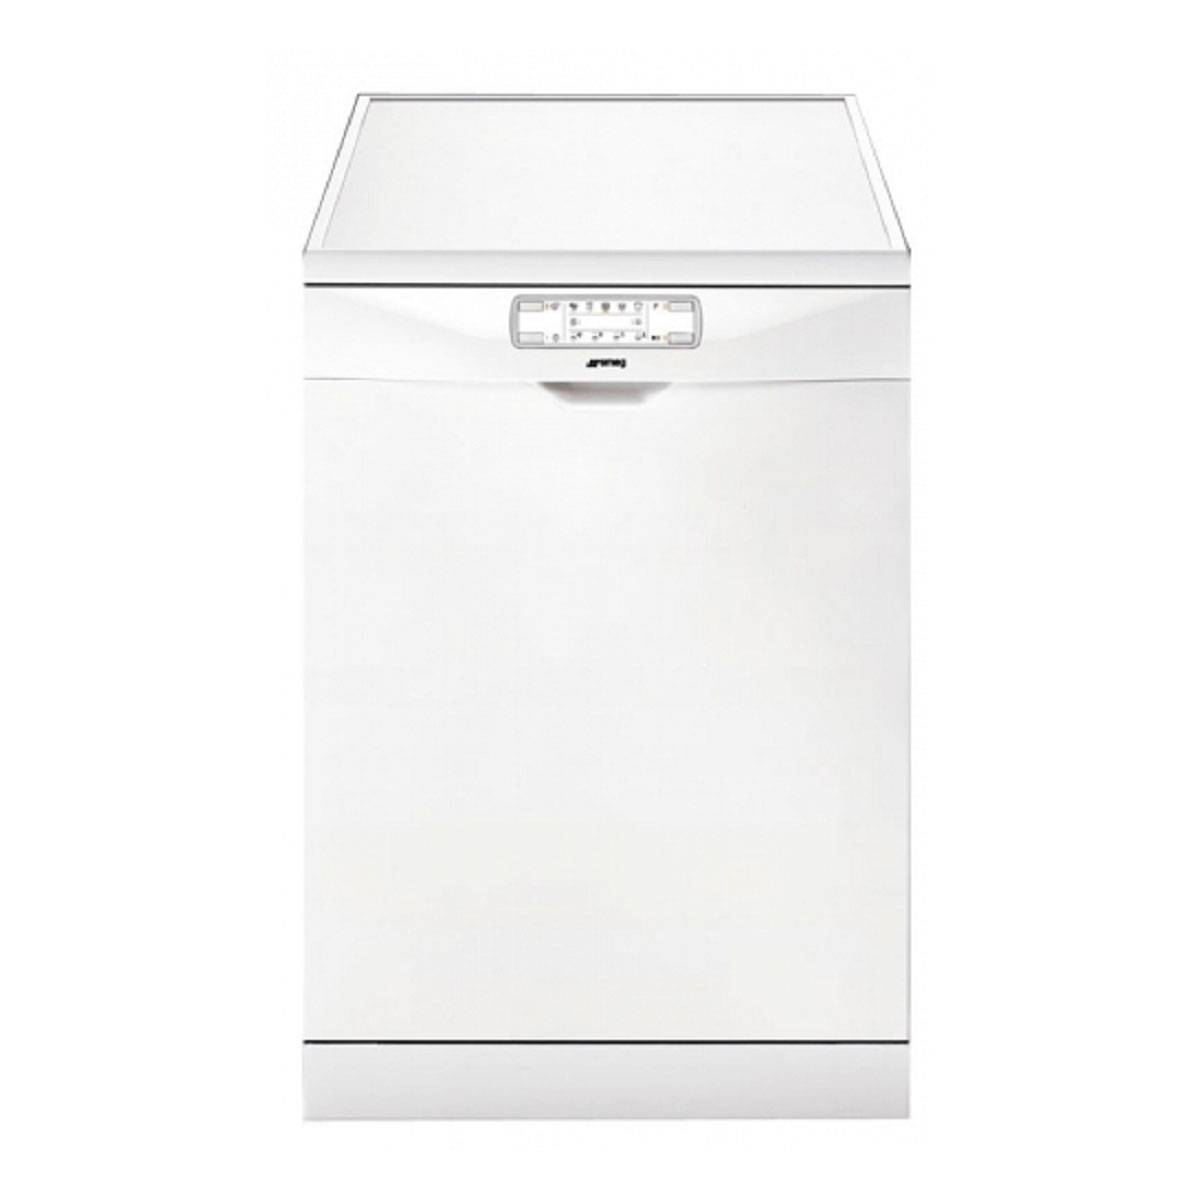 Smeg DWA214W Freestanding Dishwasher